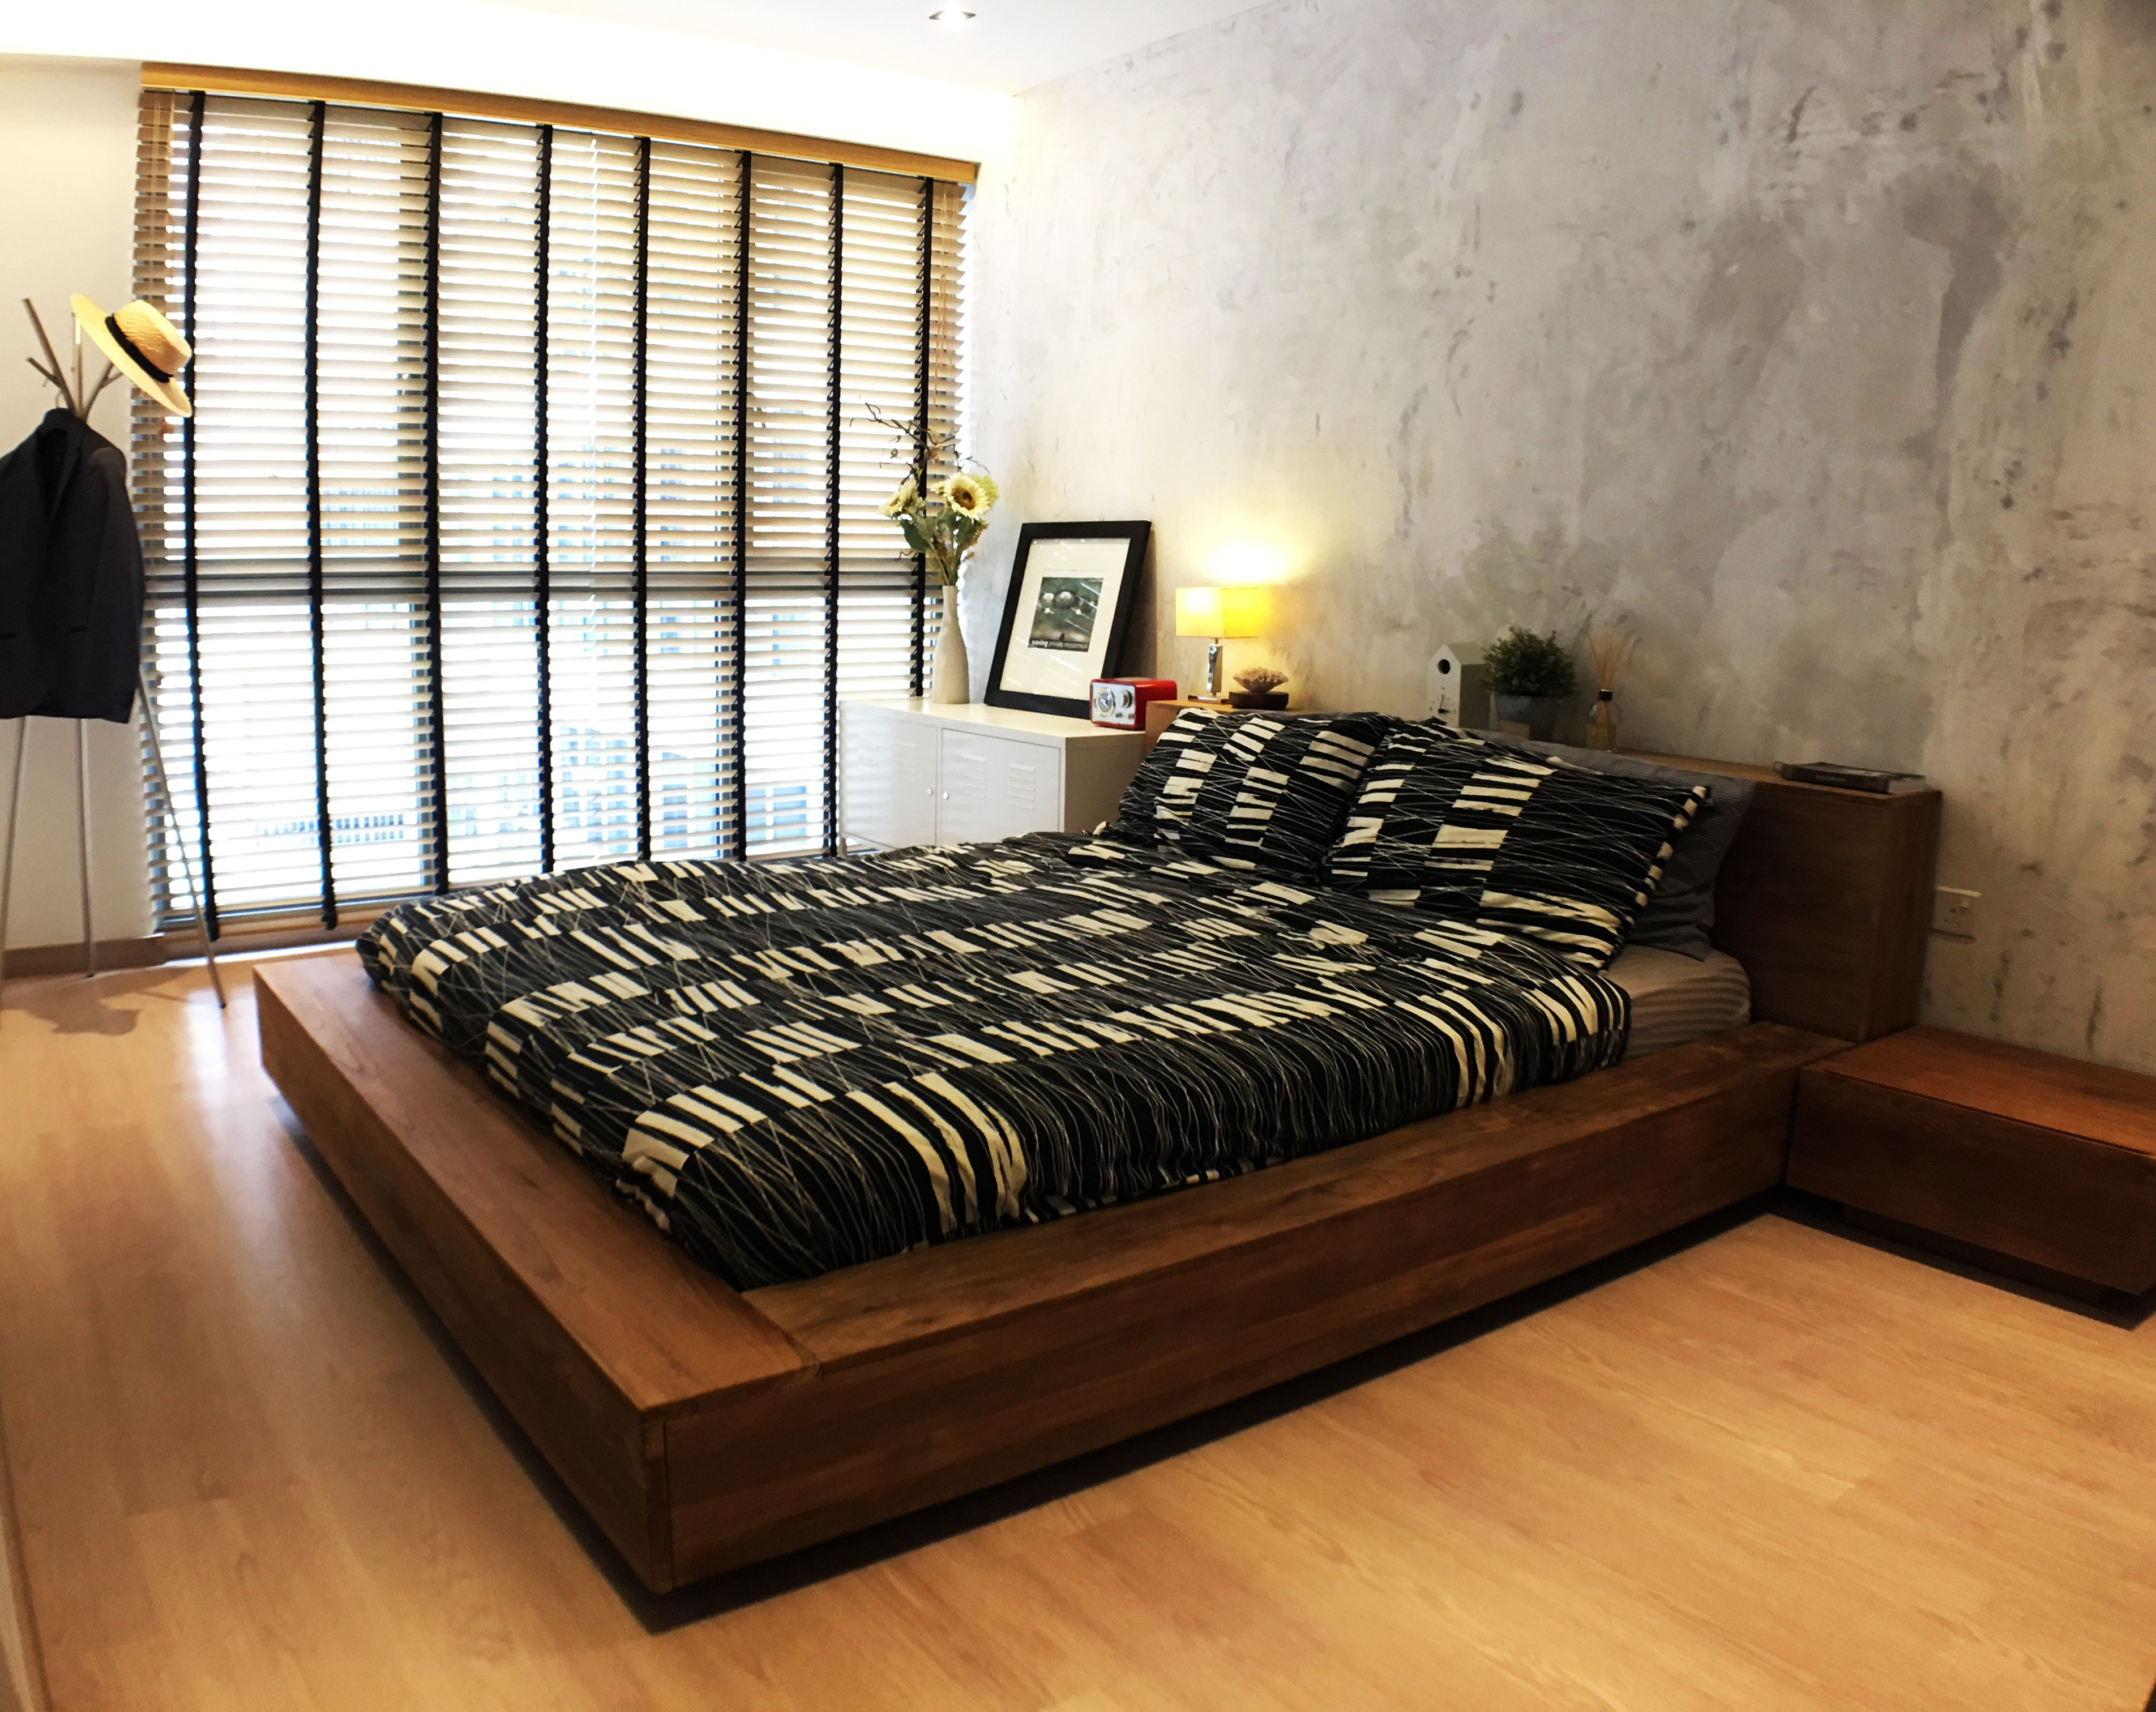 Wonderful RSDS Architects   Singapore Interior Design Renovation   Master Bedroom  With Raw Cement Wall